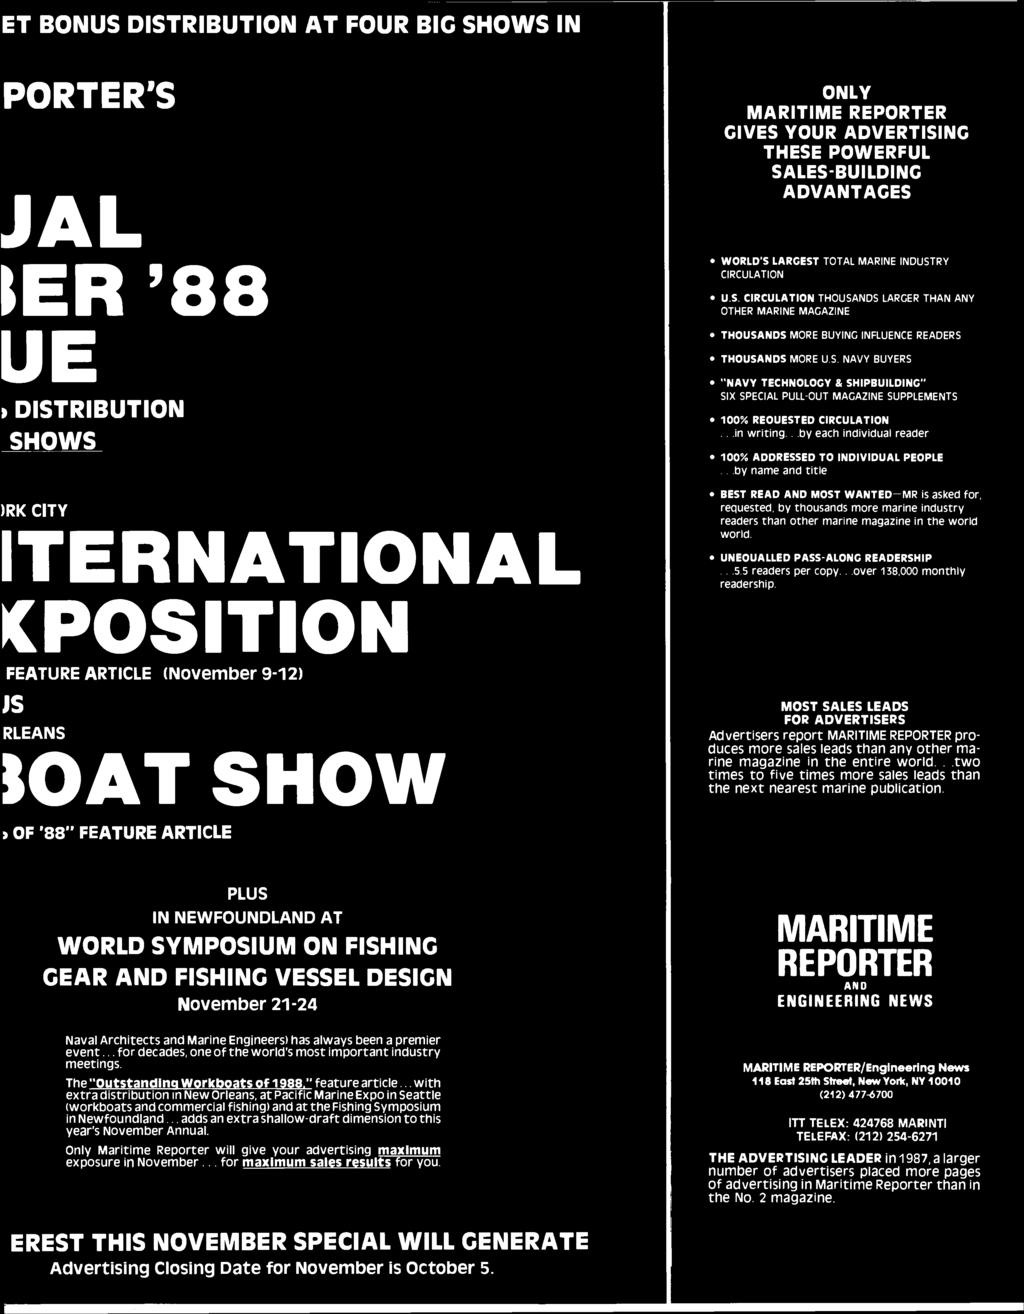 ET BONUS DISTRIBUTION AT FOUR BIG SHOWS IN PORTER'S JAL ter '88 UE > DISTRIBUTION SHOWS )RK CITY ITERNATIONAL C POSITION FEATURE ARTICLE (November 9-12) JS RLEANS IOAT SHOW ONLY MARITIME REPORTER